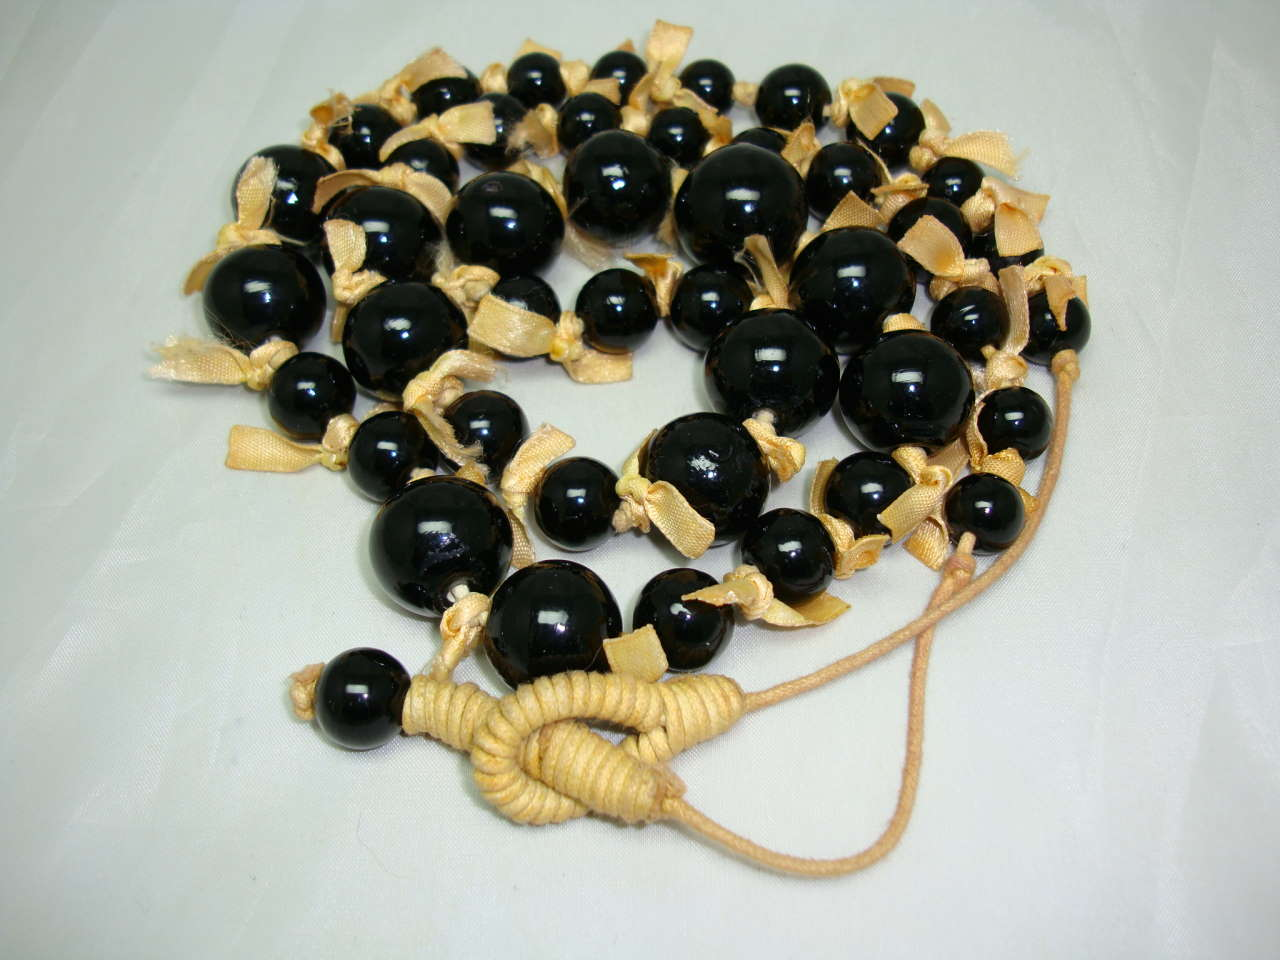 £18.00 - 1970s Style Long Black Glass Bead Necklace with Bows!